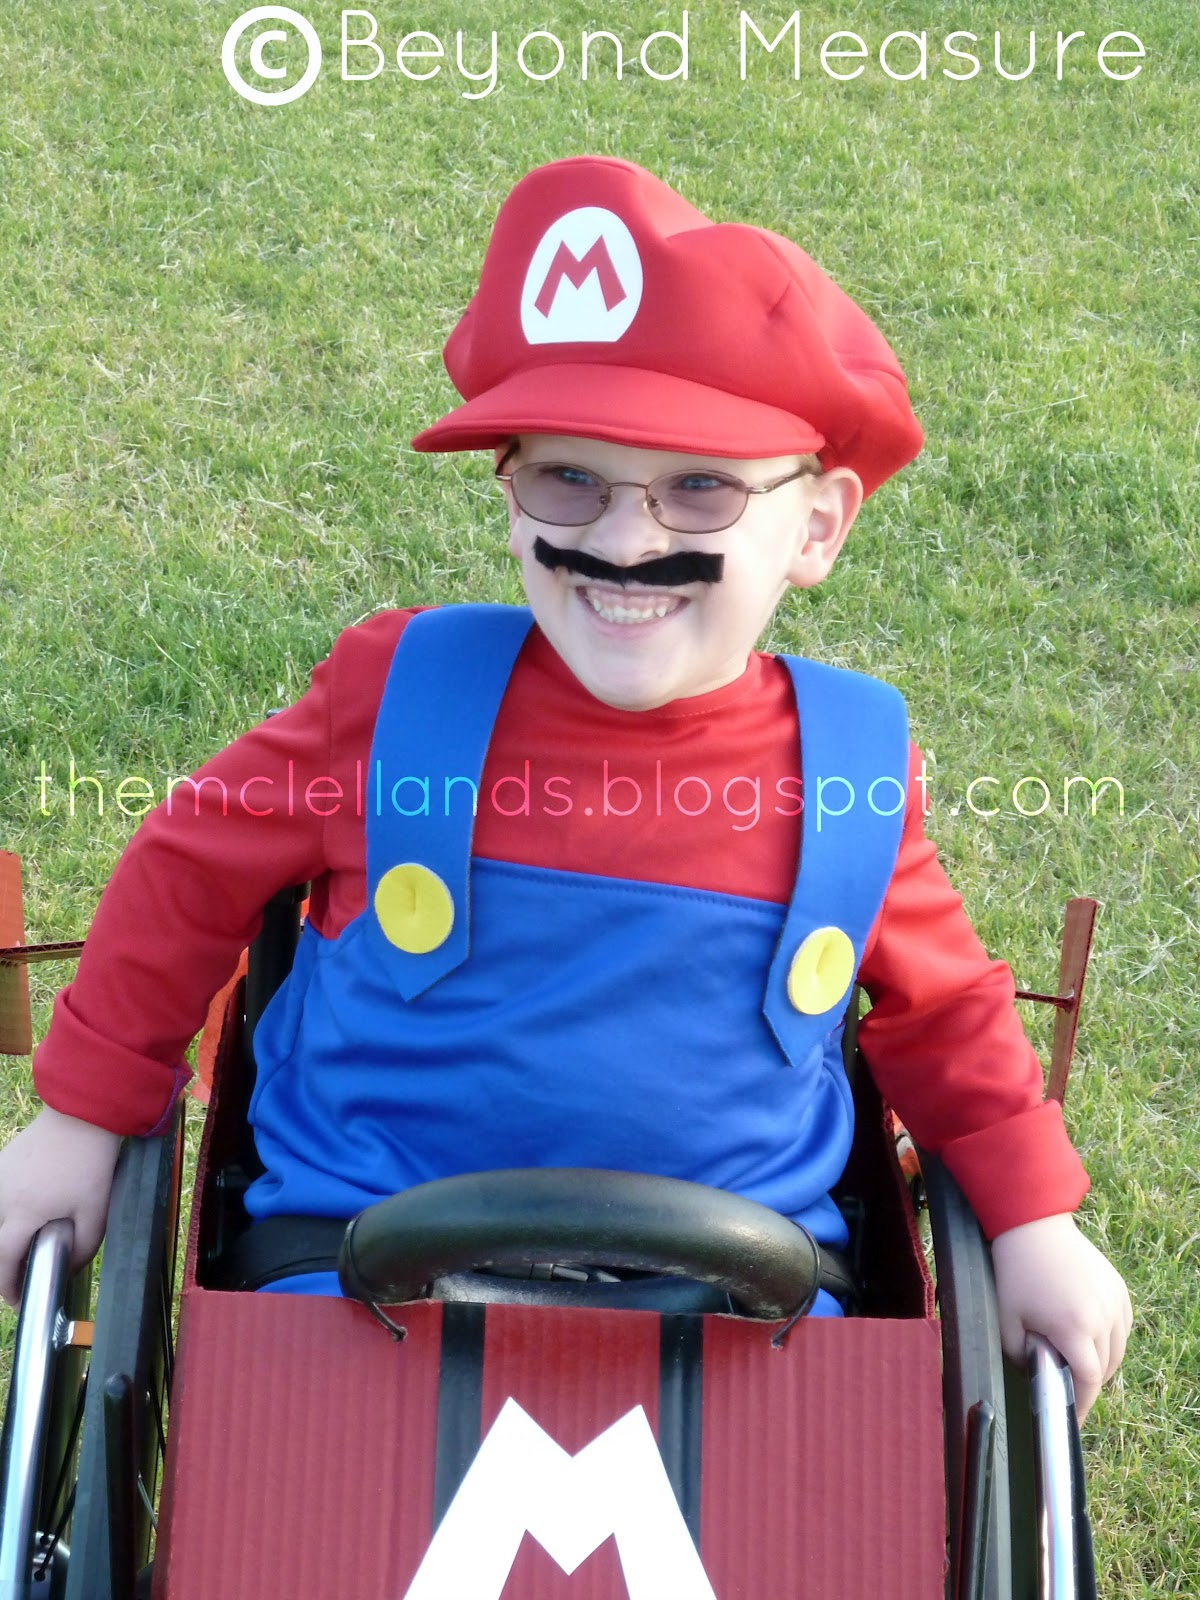 wheelchair mario emperor palpatine chair beyond measure and luigi take over halloween